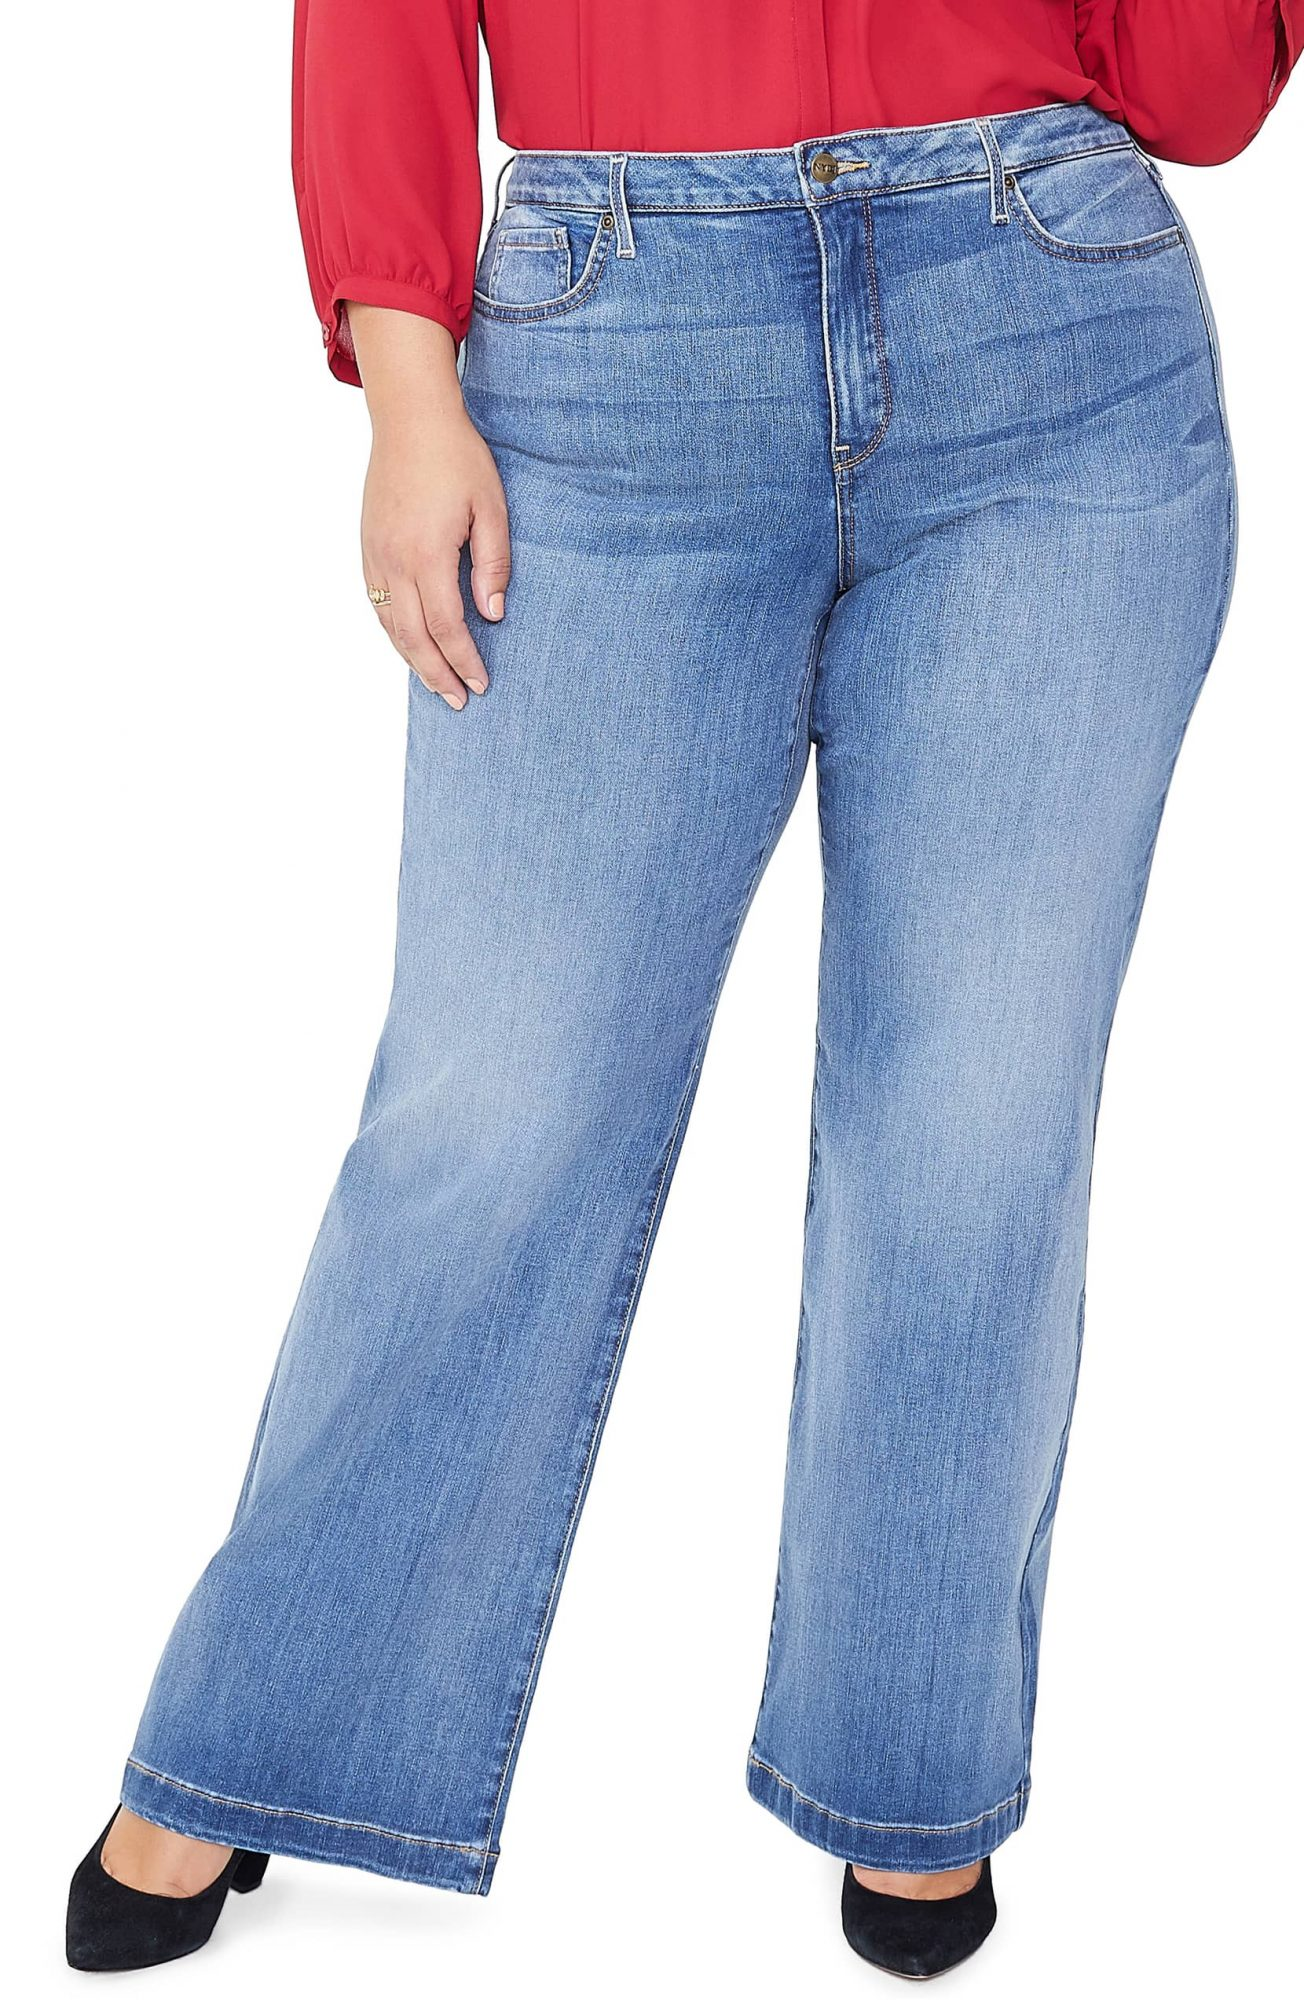 337afcc4d3 The Best Jeans for Women with Large Thighs | InStyle.com